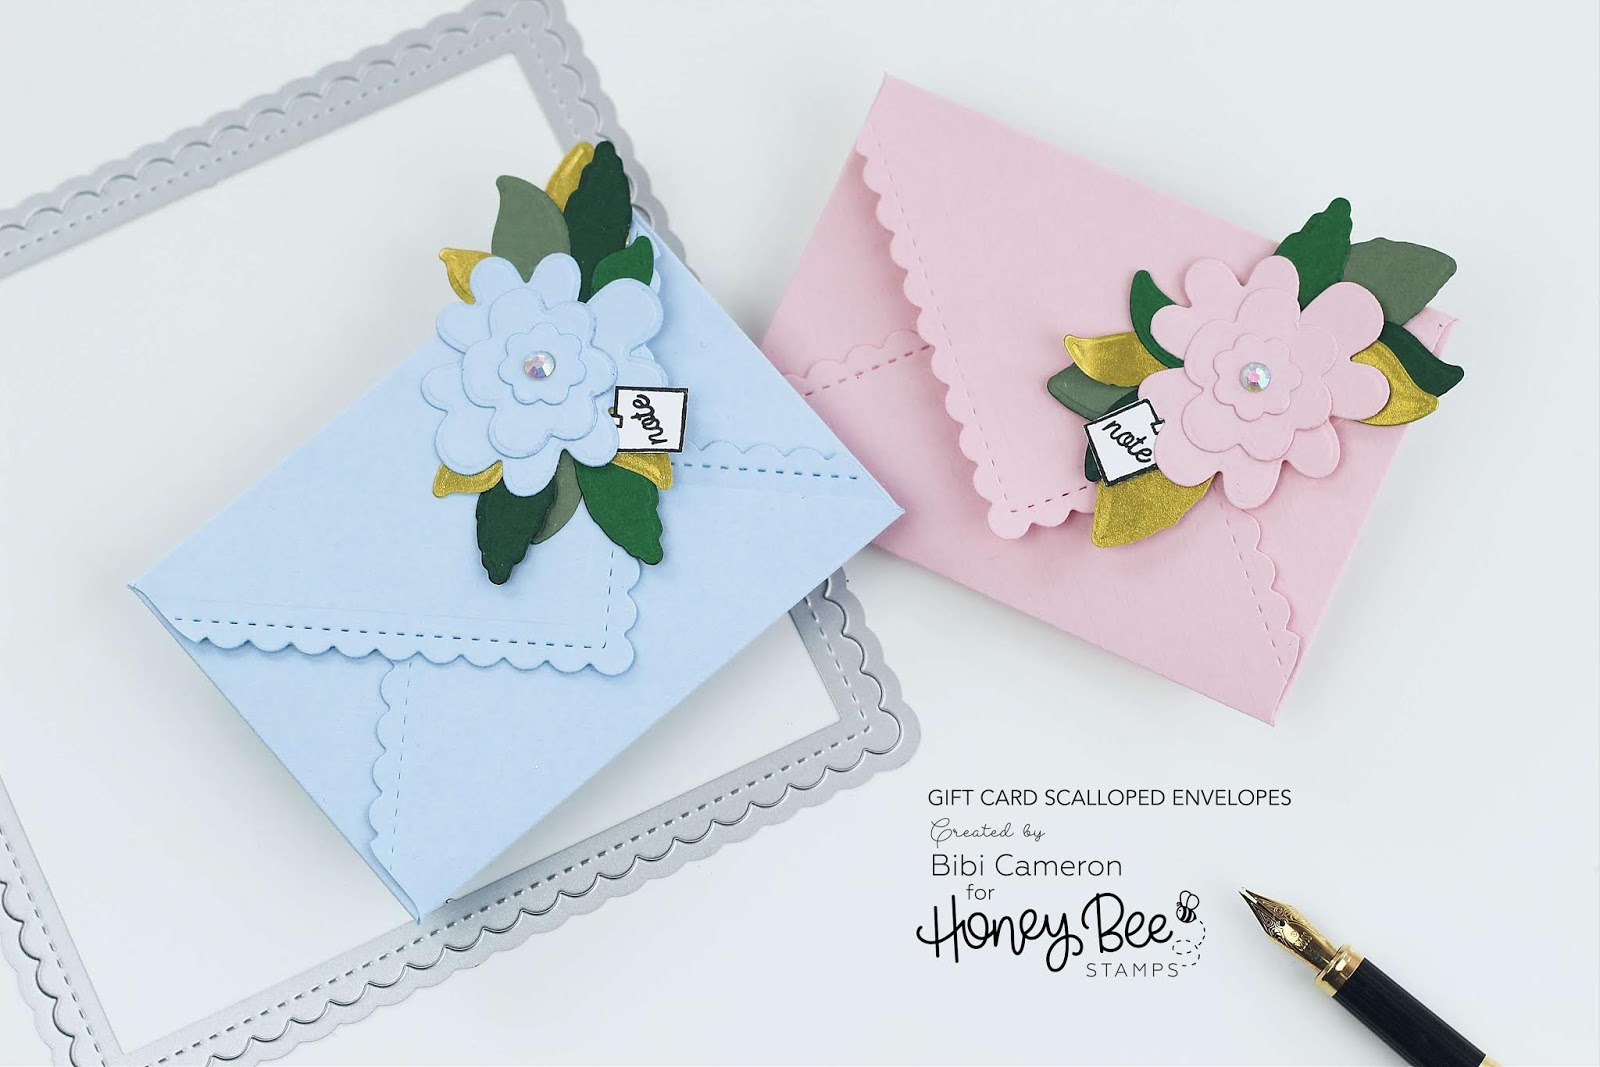 Mini Scalloped Envelopes with Stitched Scallop Square Dies by Honey Bee Stamps